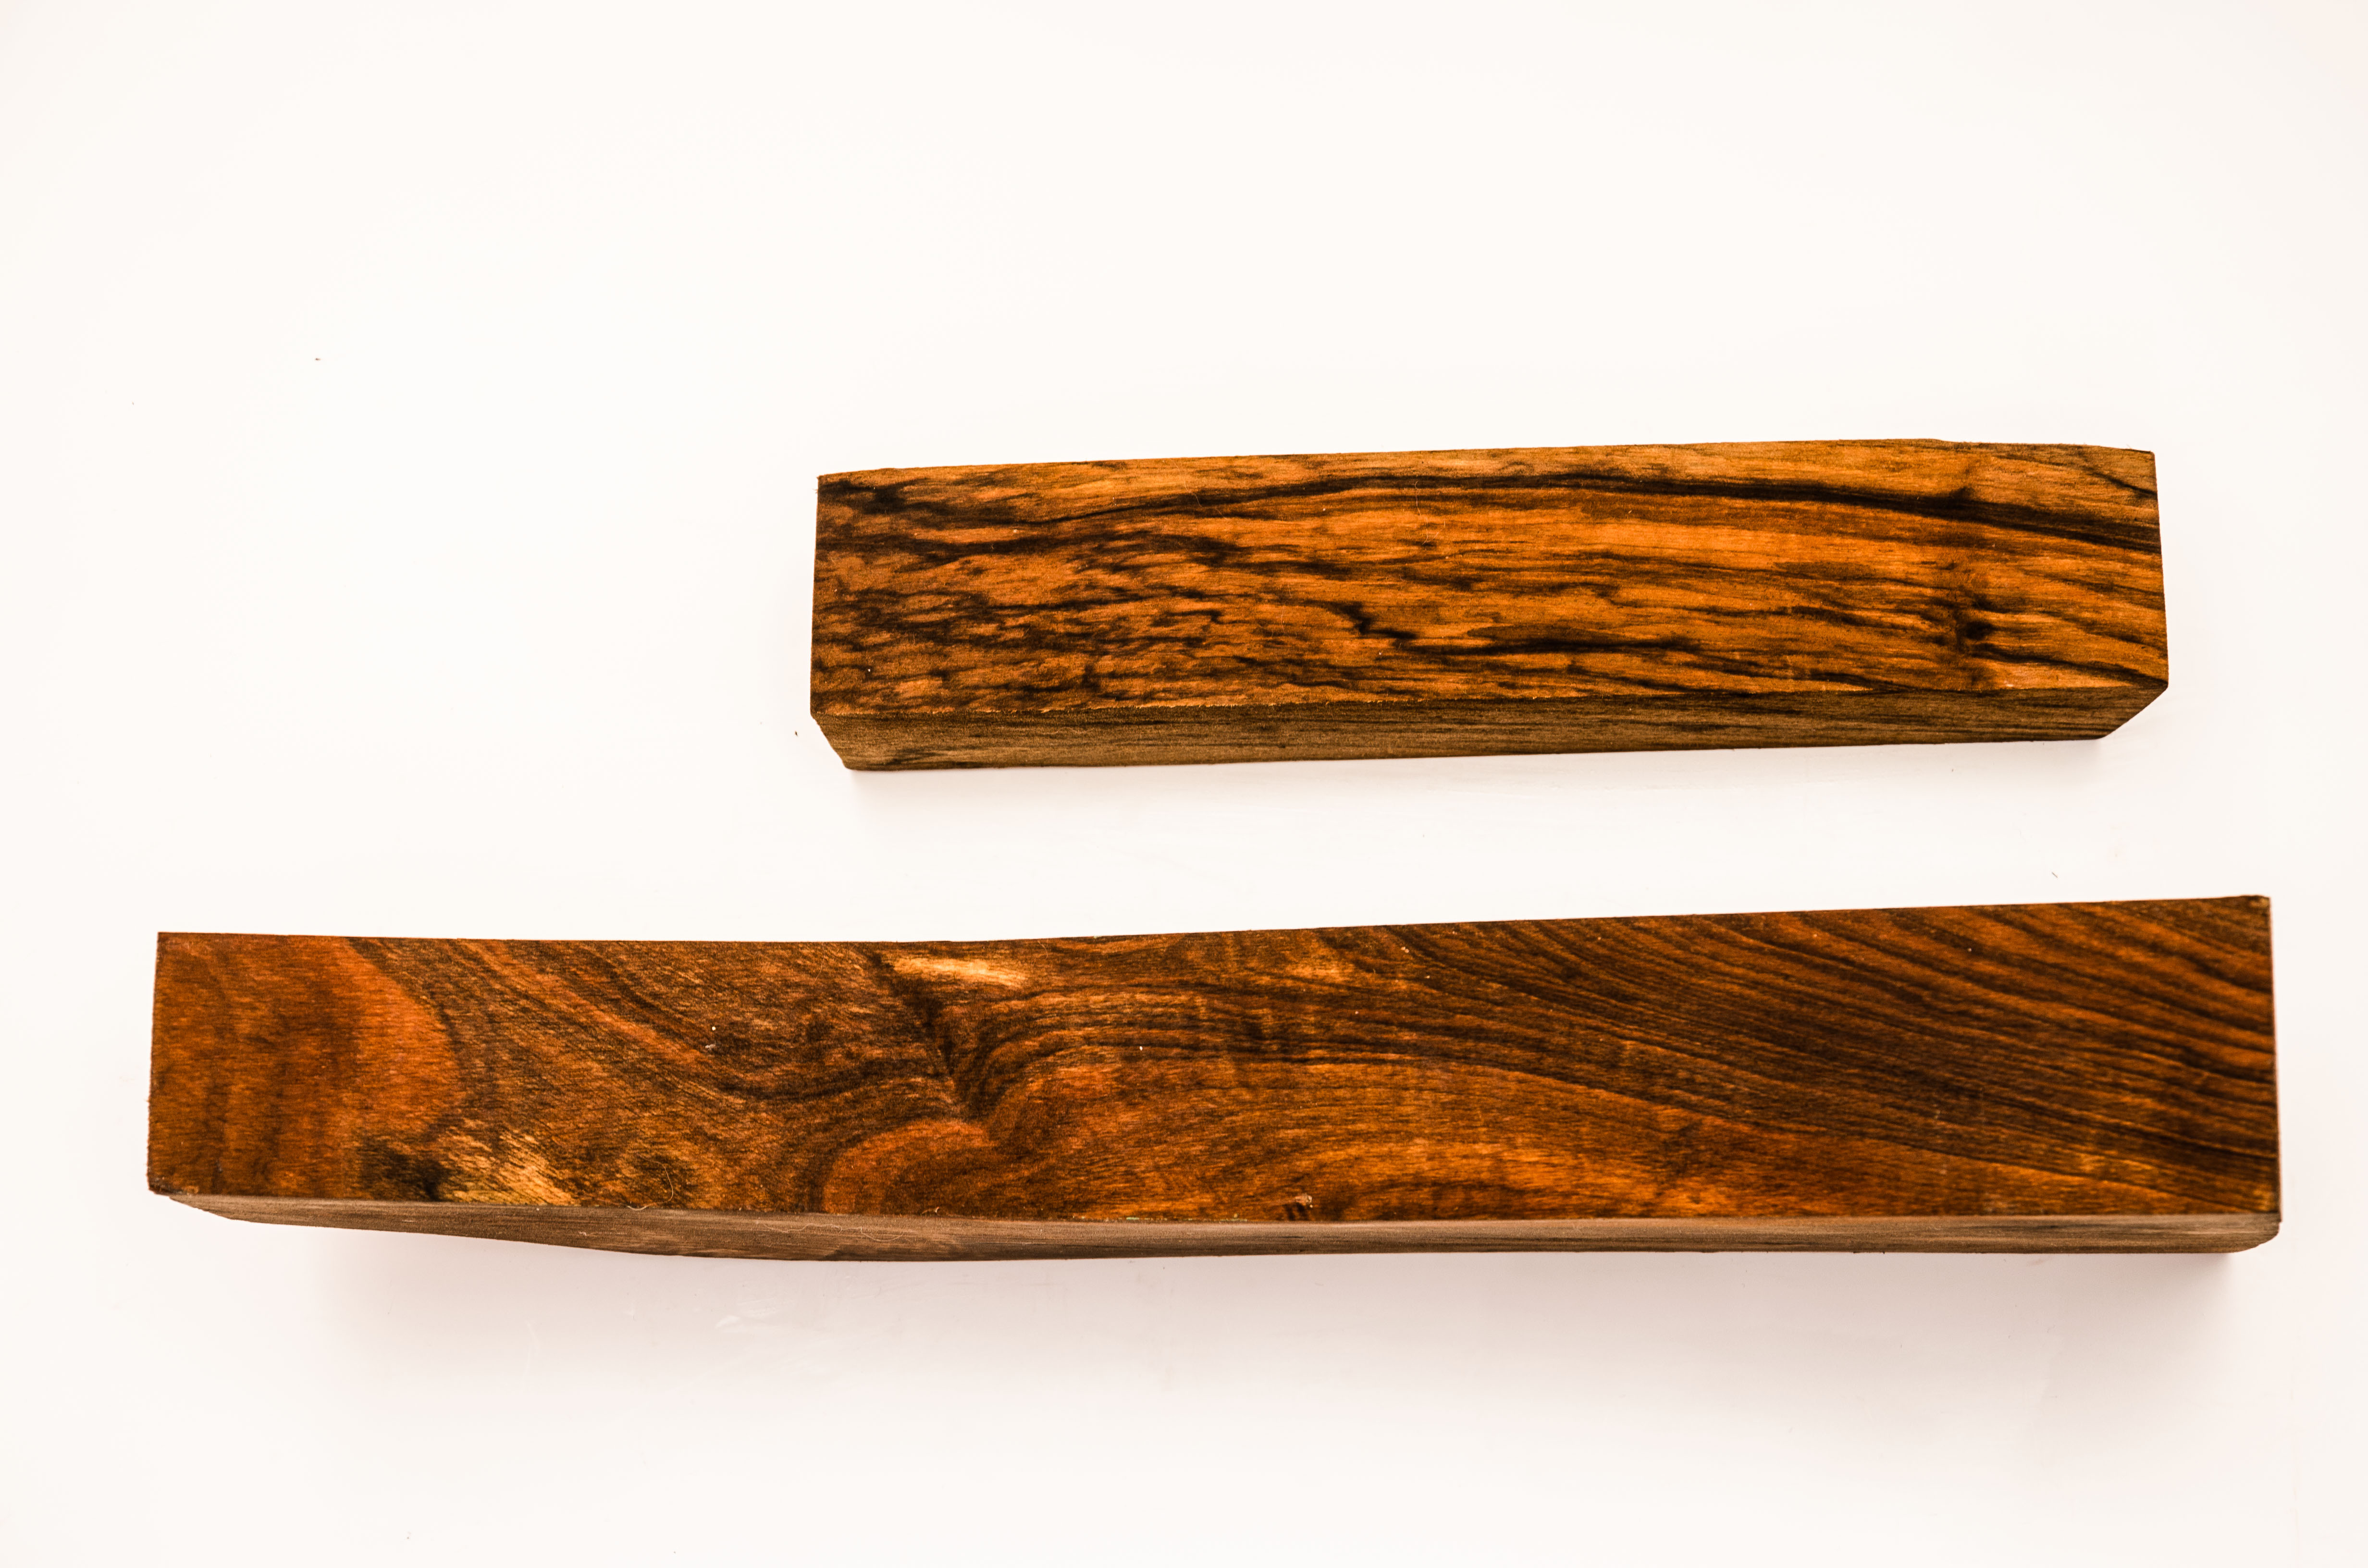 walnut_stock_blanks_for_guns_and_rifles-0504